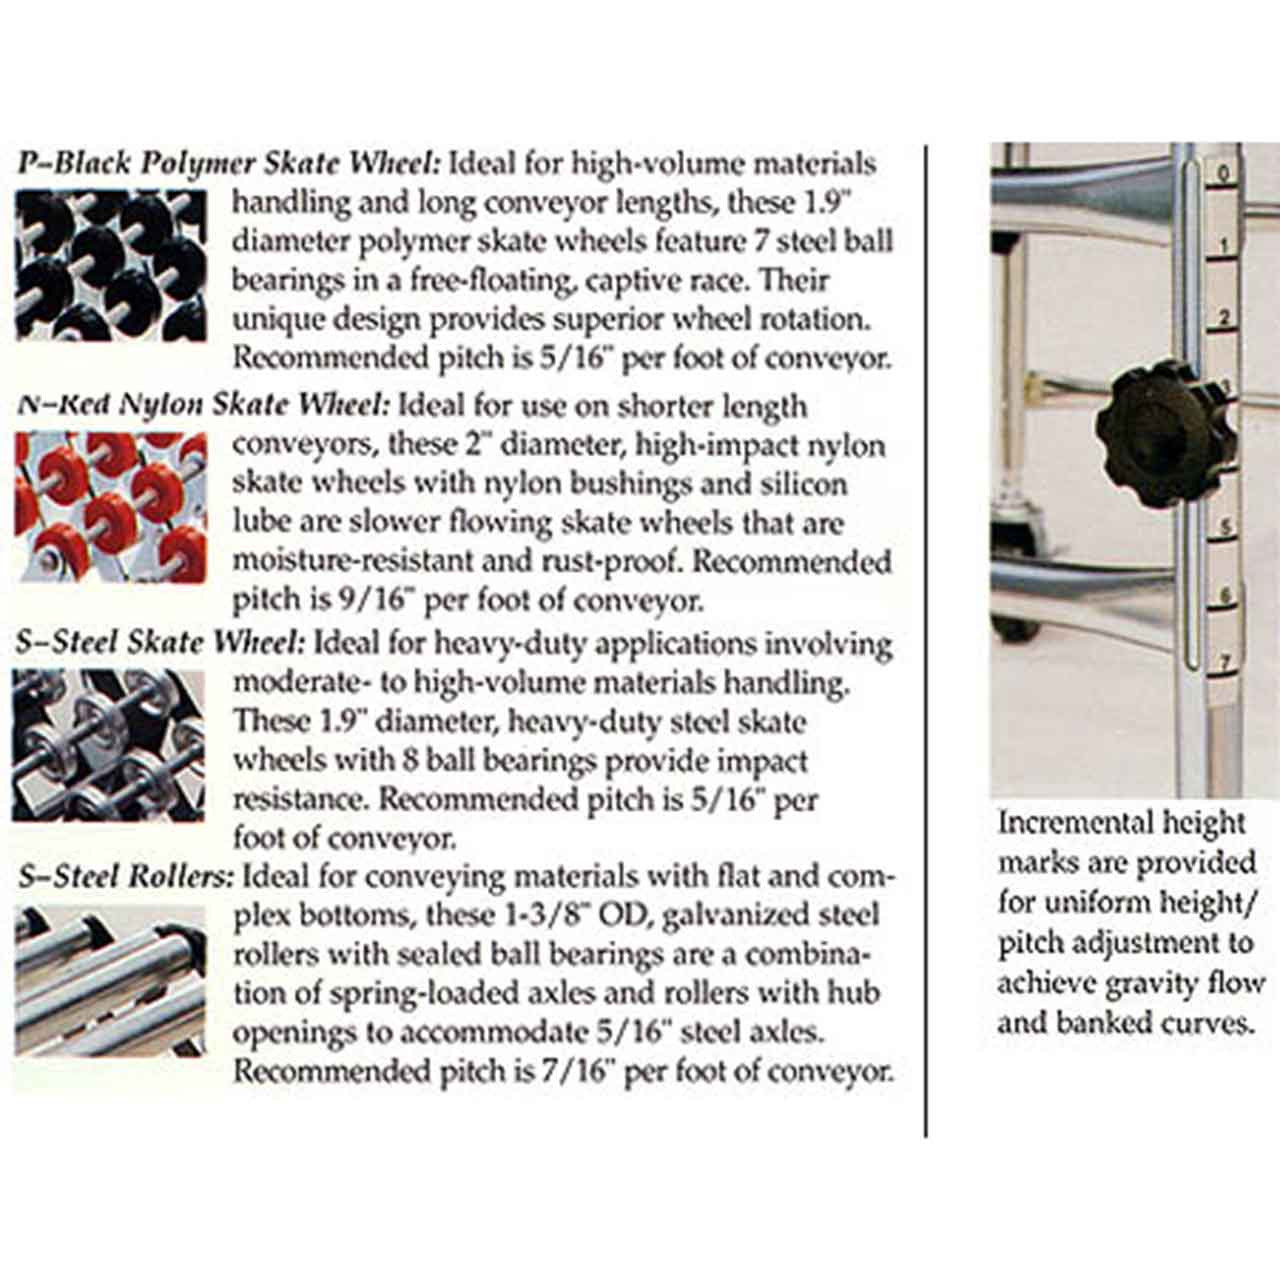 Flexible Roller Conveyor Information